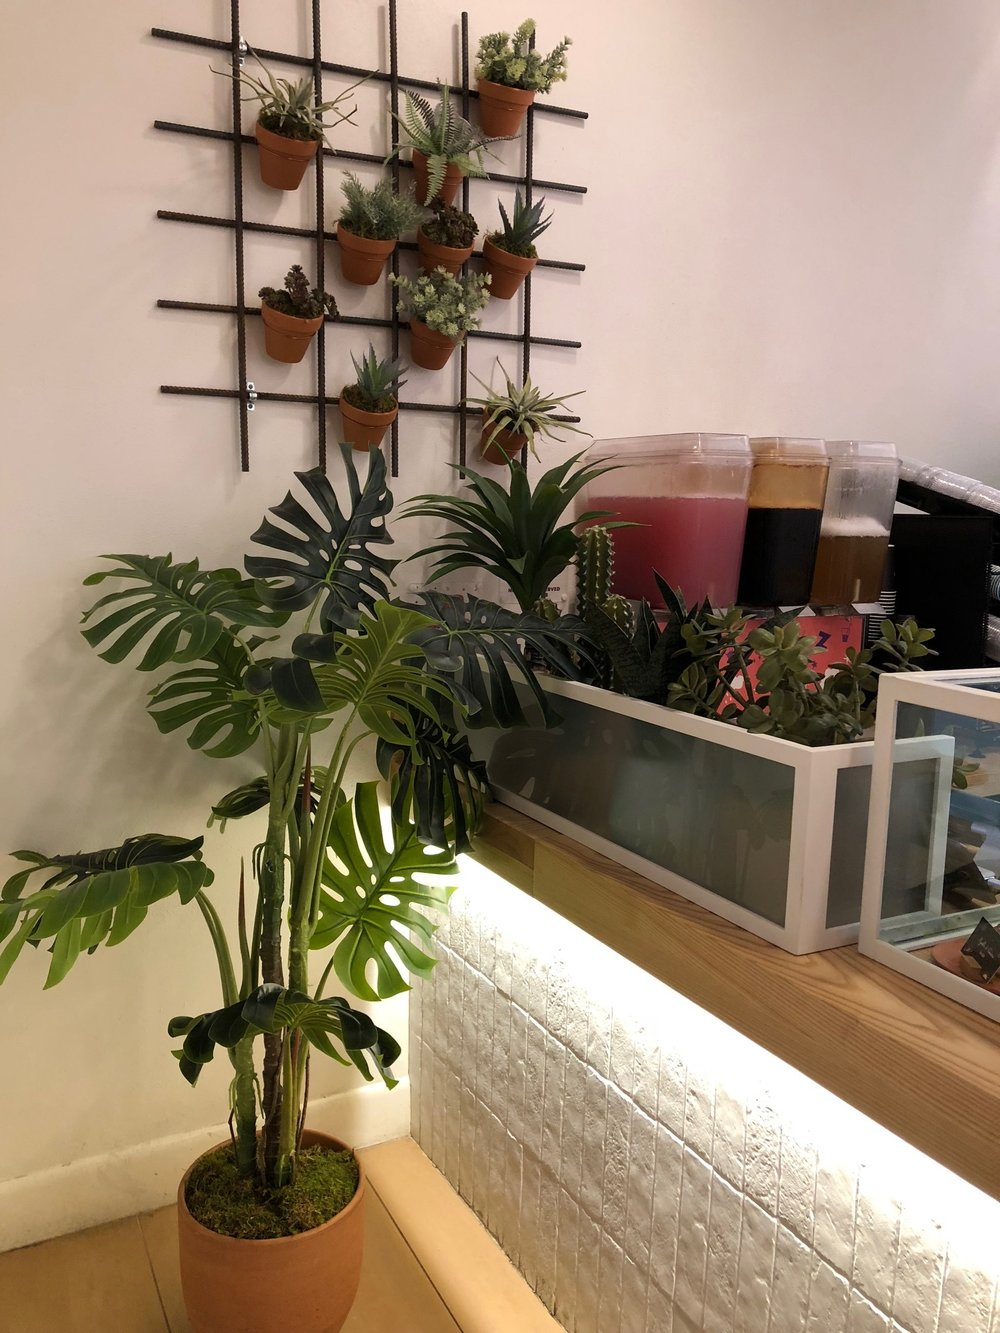 Bar area, complete with handmade-look subway tile and plenty of plants.